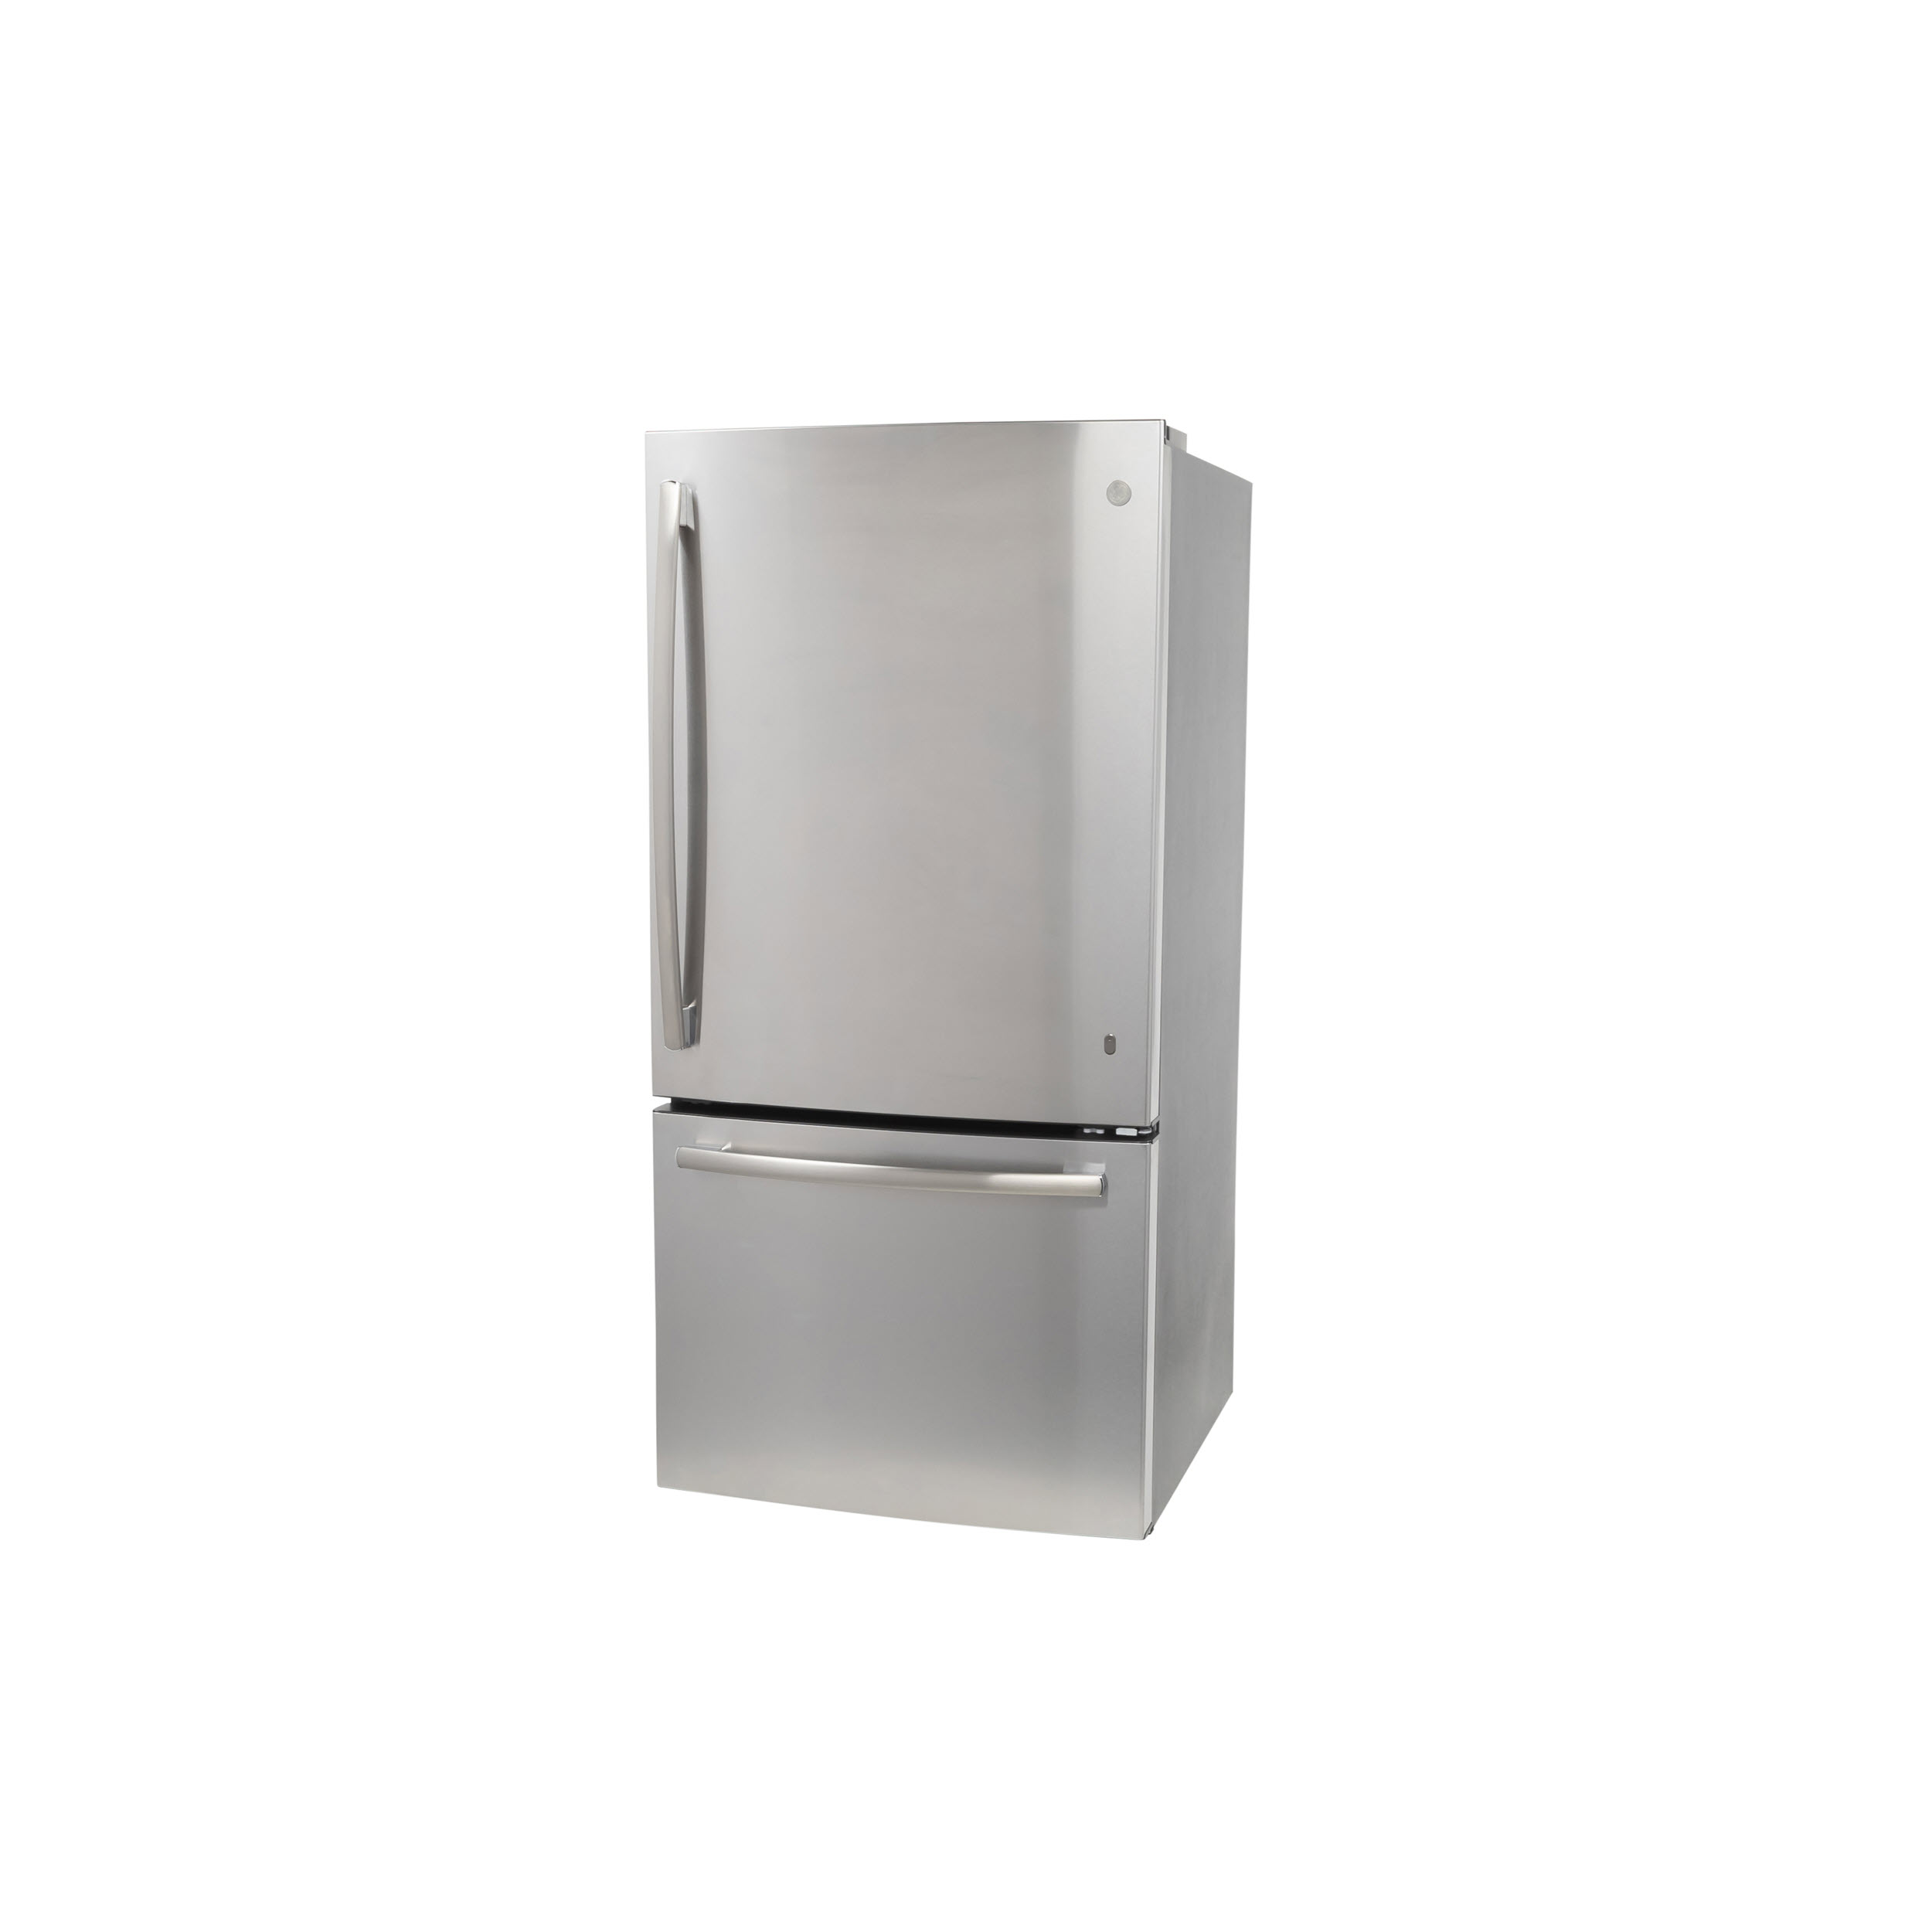 Model: GDE25ESKSS | GE GE® ENERGY STAR® 24.8 Cu. Ft. Bottom-Freezer Drawer Refrigerator